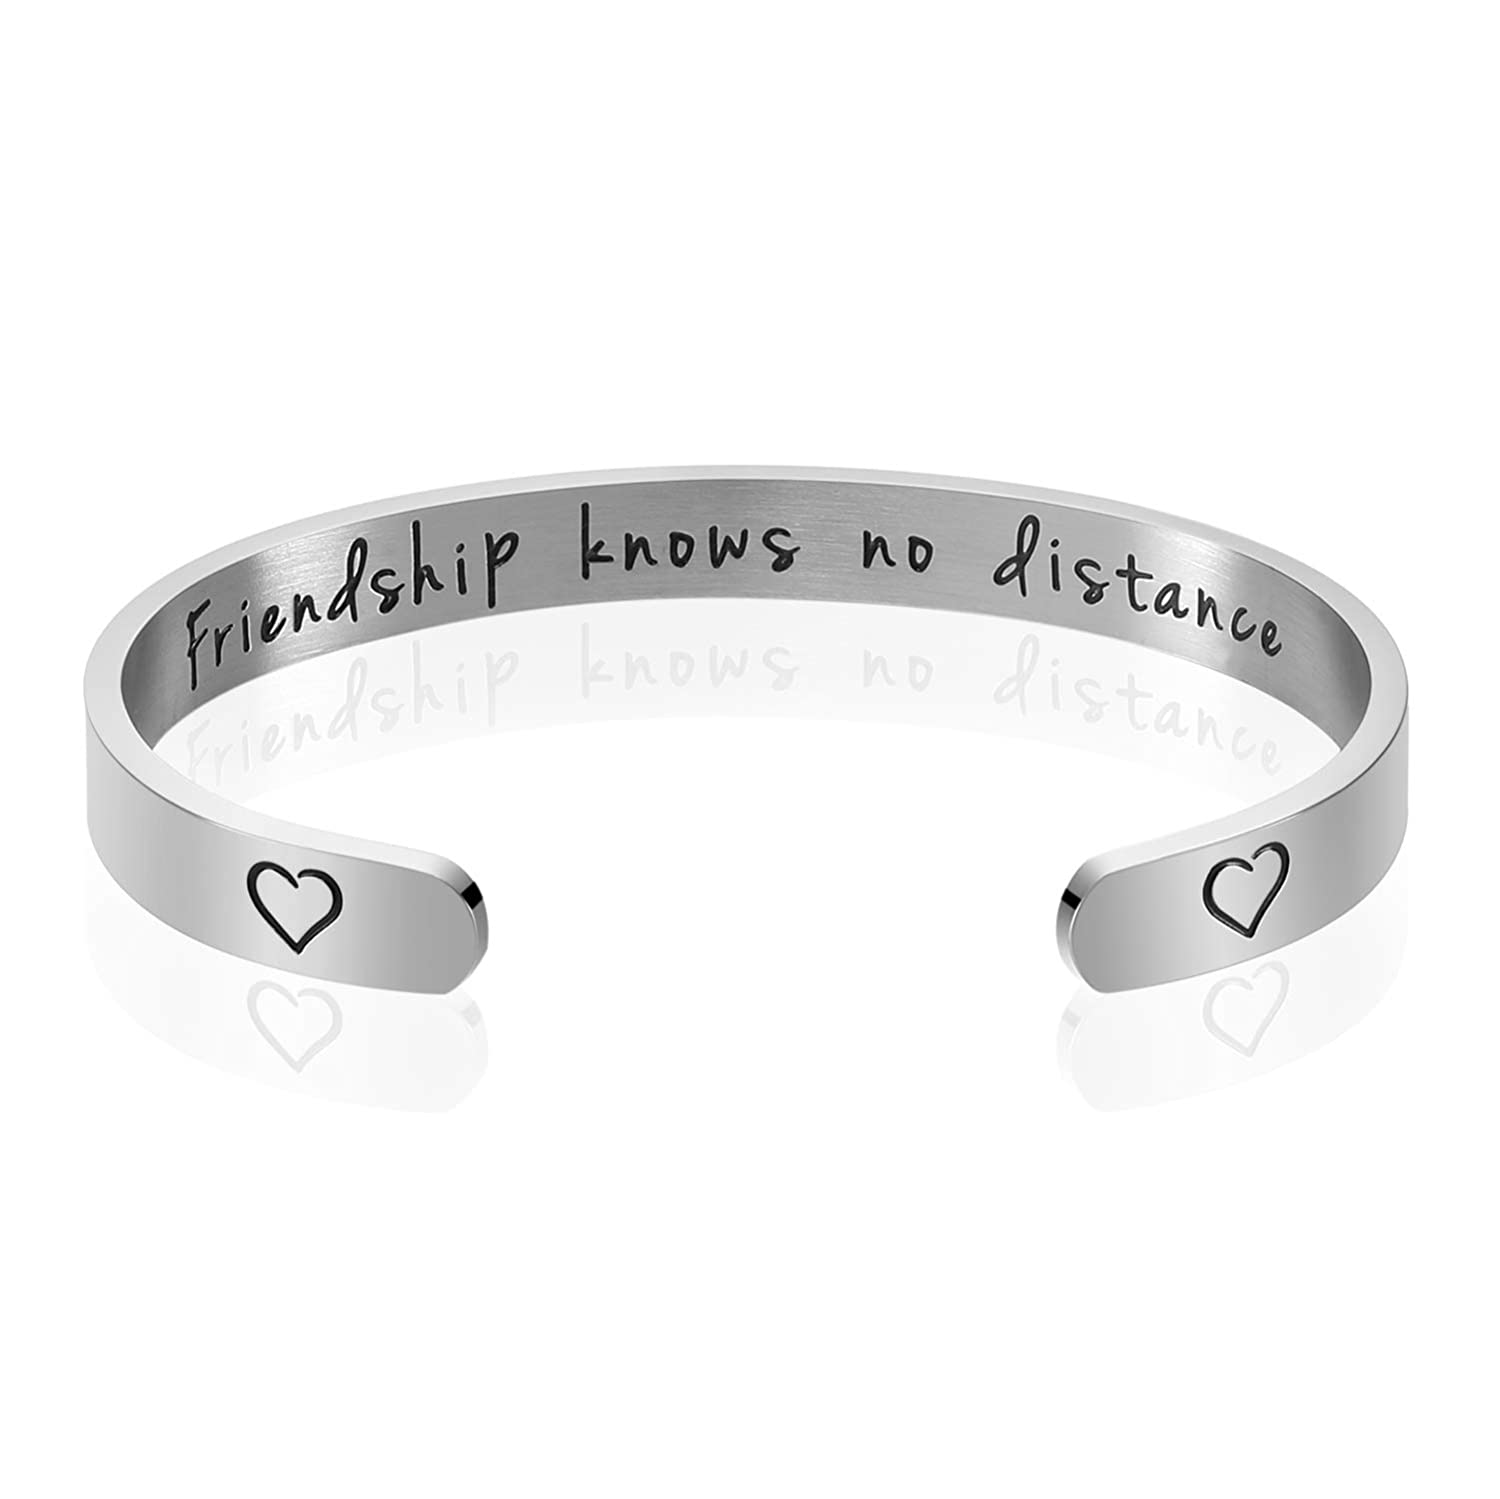 iJuqi Friendship Gifts Bracelet - Best Fucking Bitches Inspirational for Women Girls, Birthday Gifts for Friends Female, Friendship Jewelry BFF-1